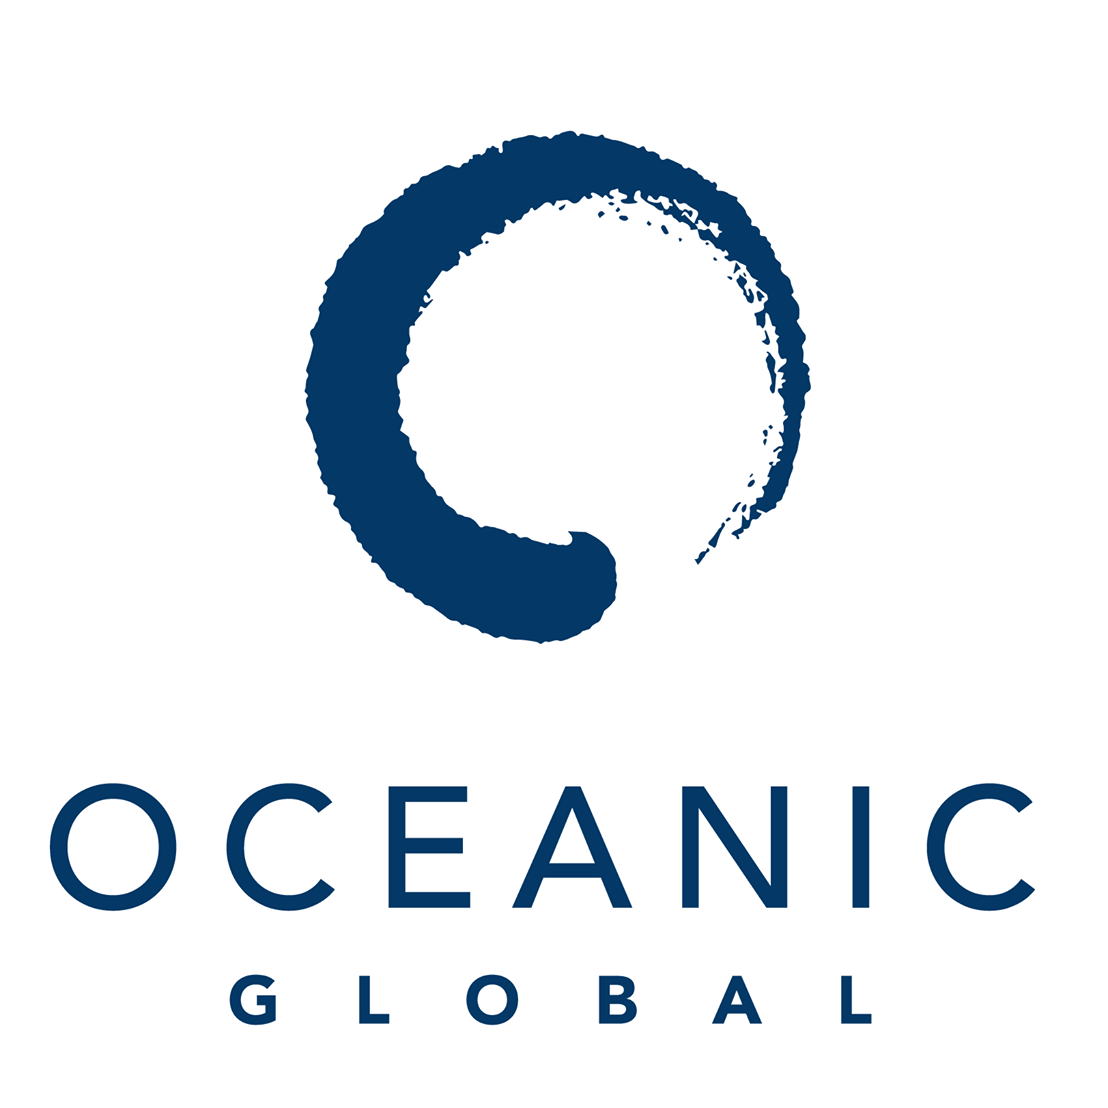 Oceanic Global  is a non-profit that taps into universal passions of art, music and emerging tech to educate individuals on issues impacting our oceans.